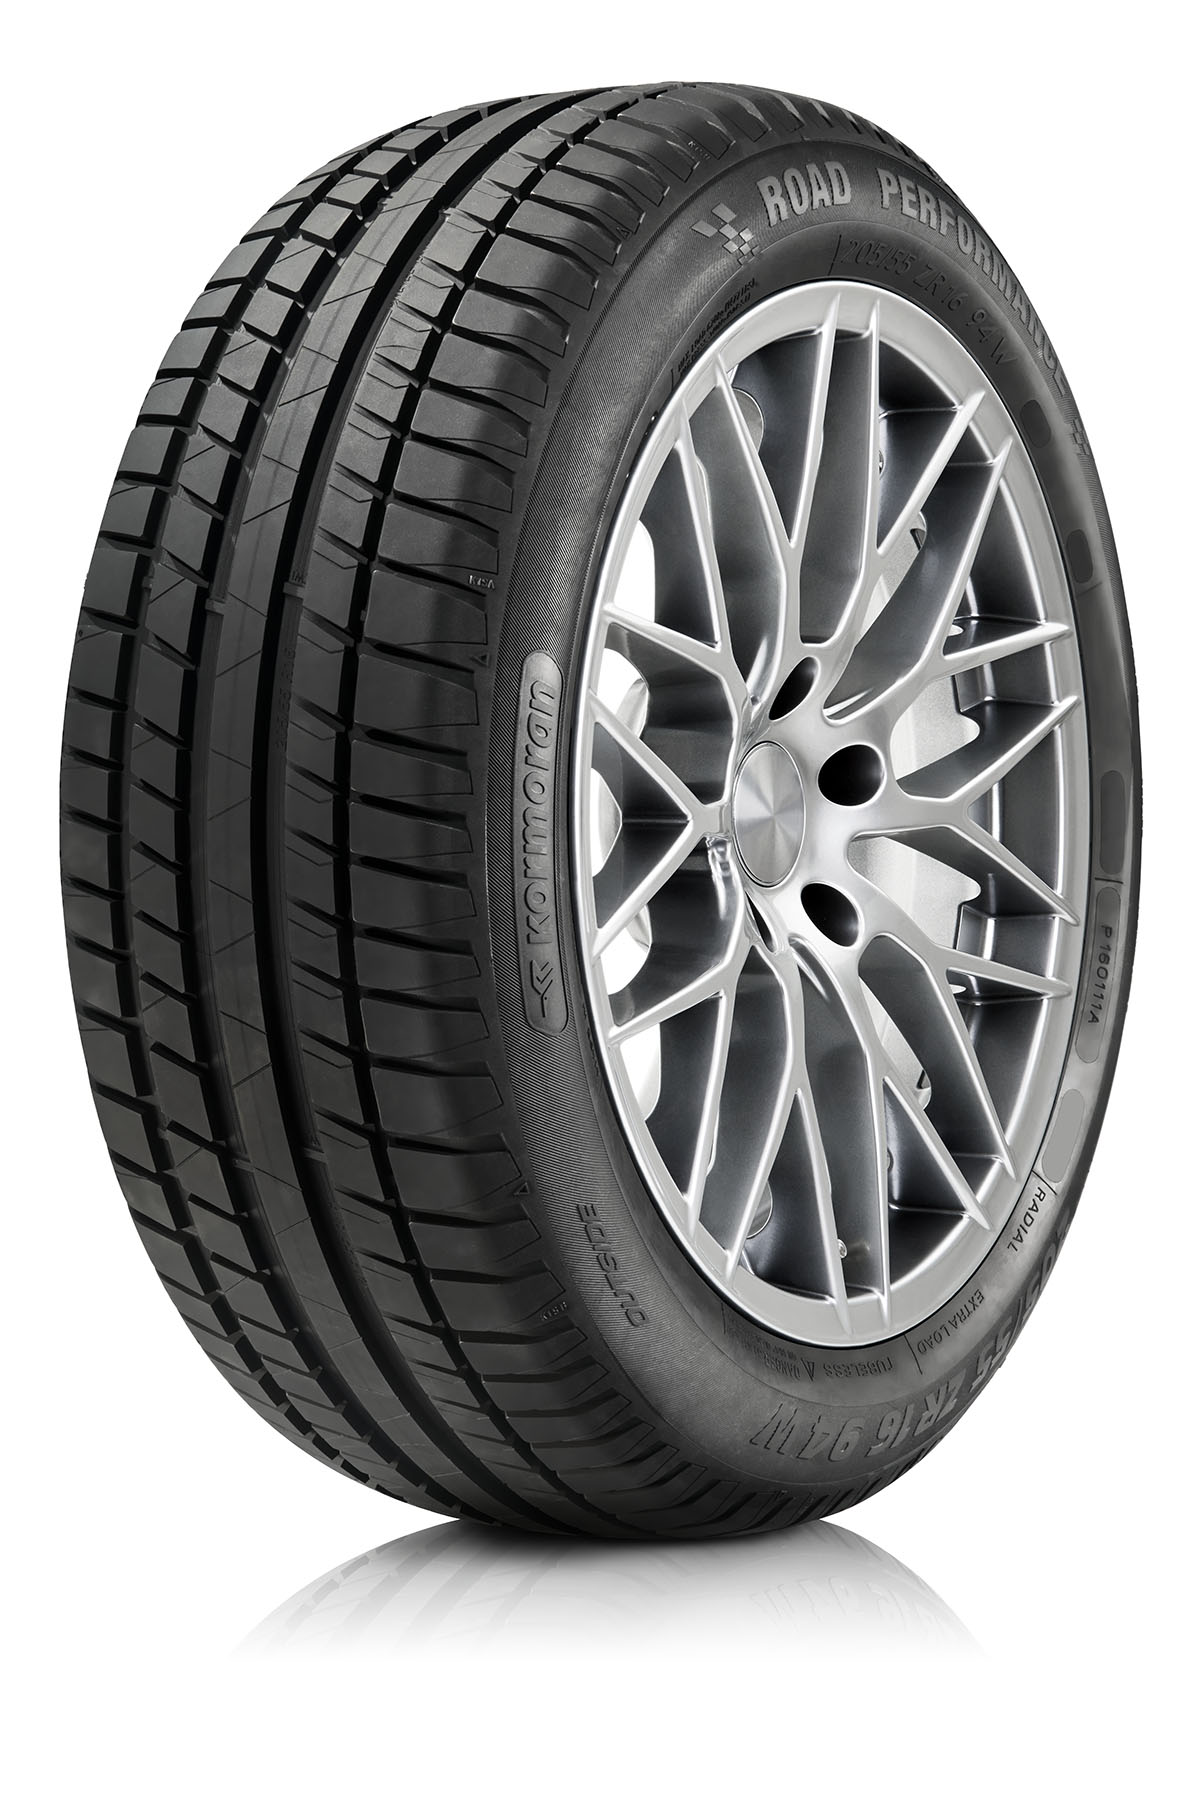 Road Performance 185/60 R15  - МастерШина